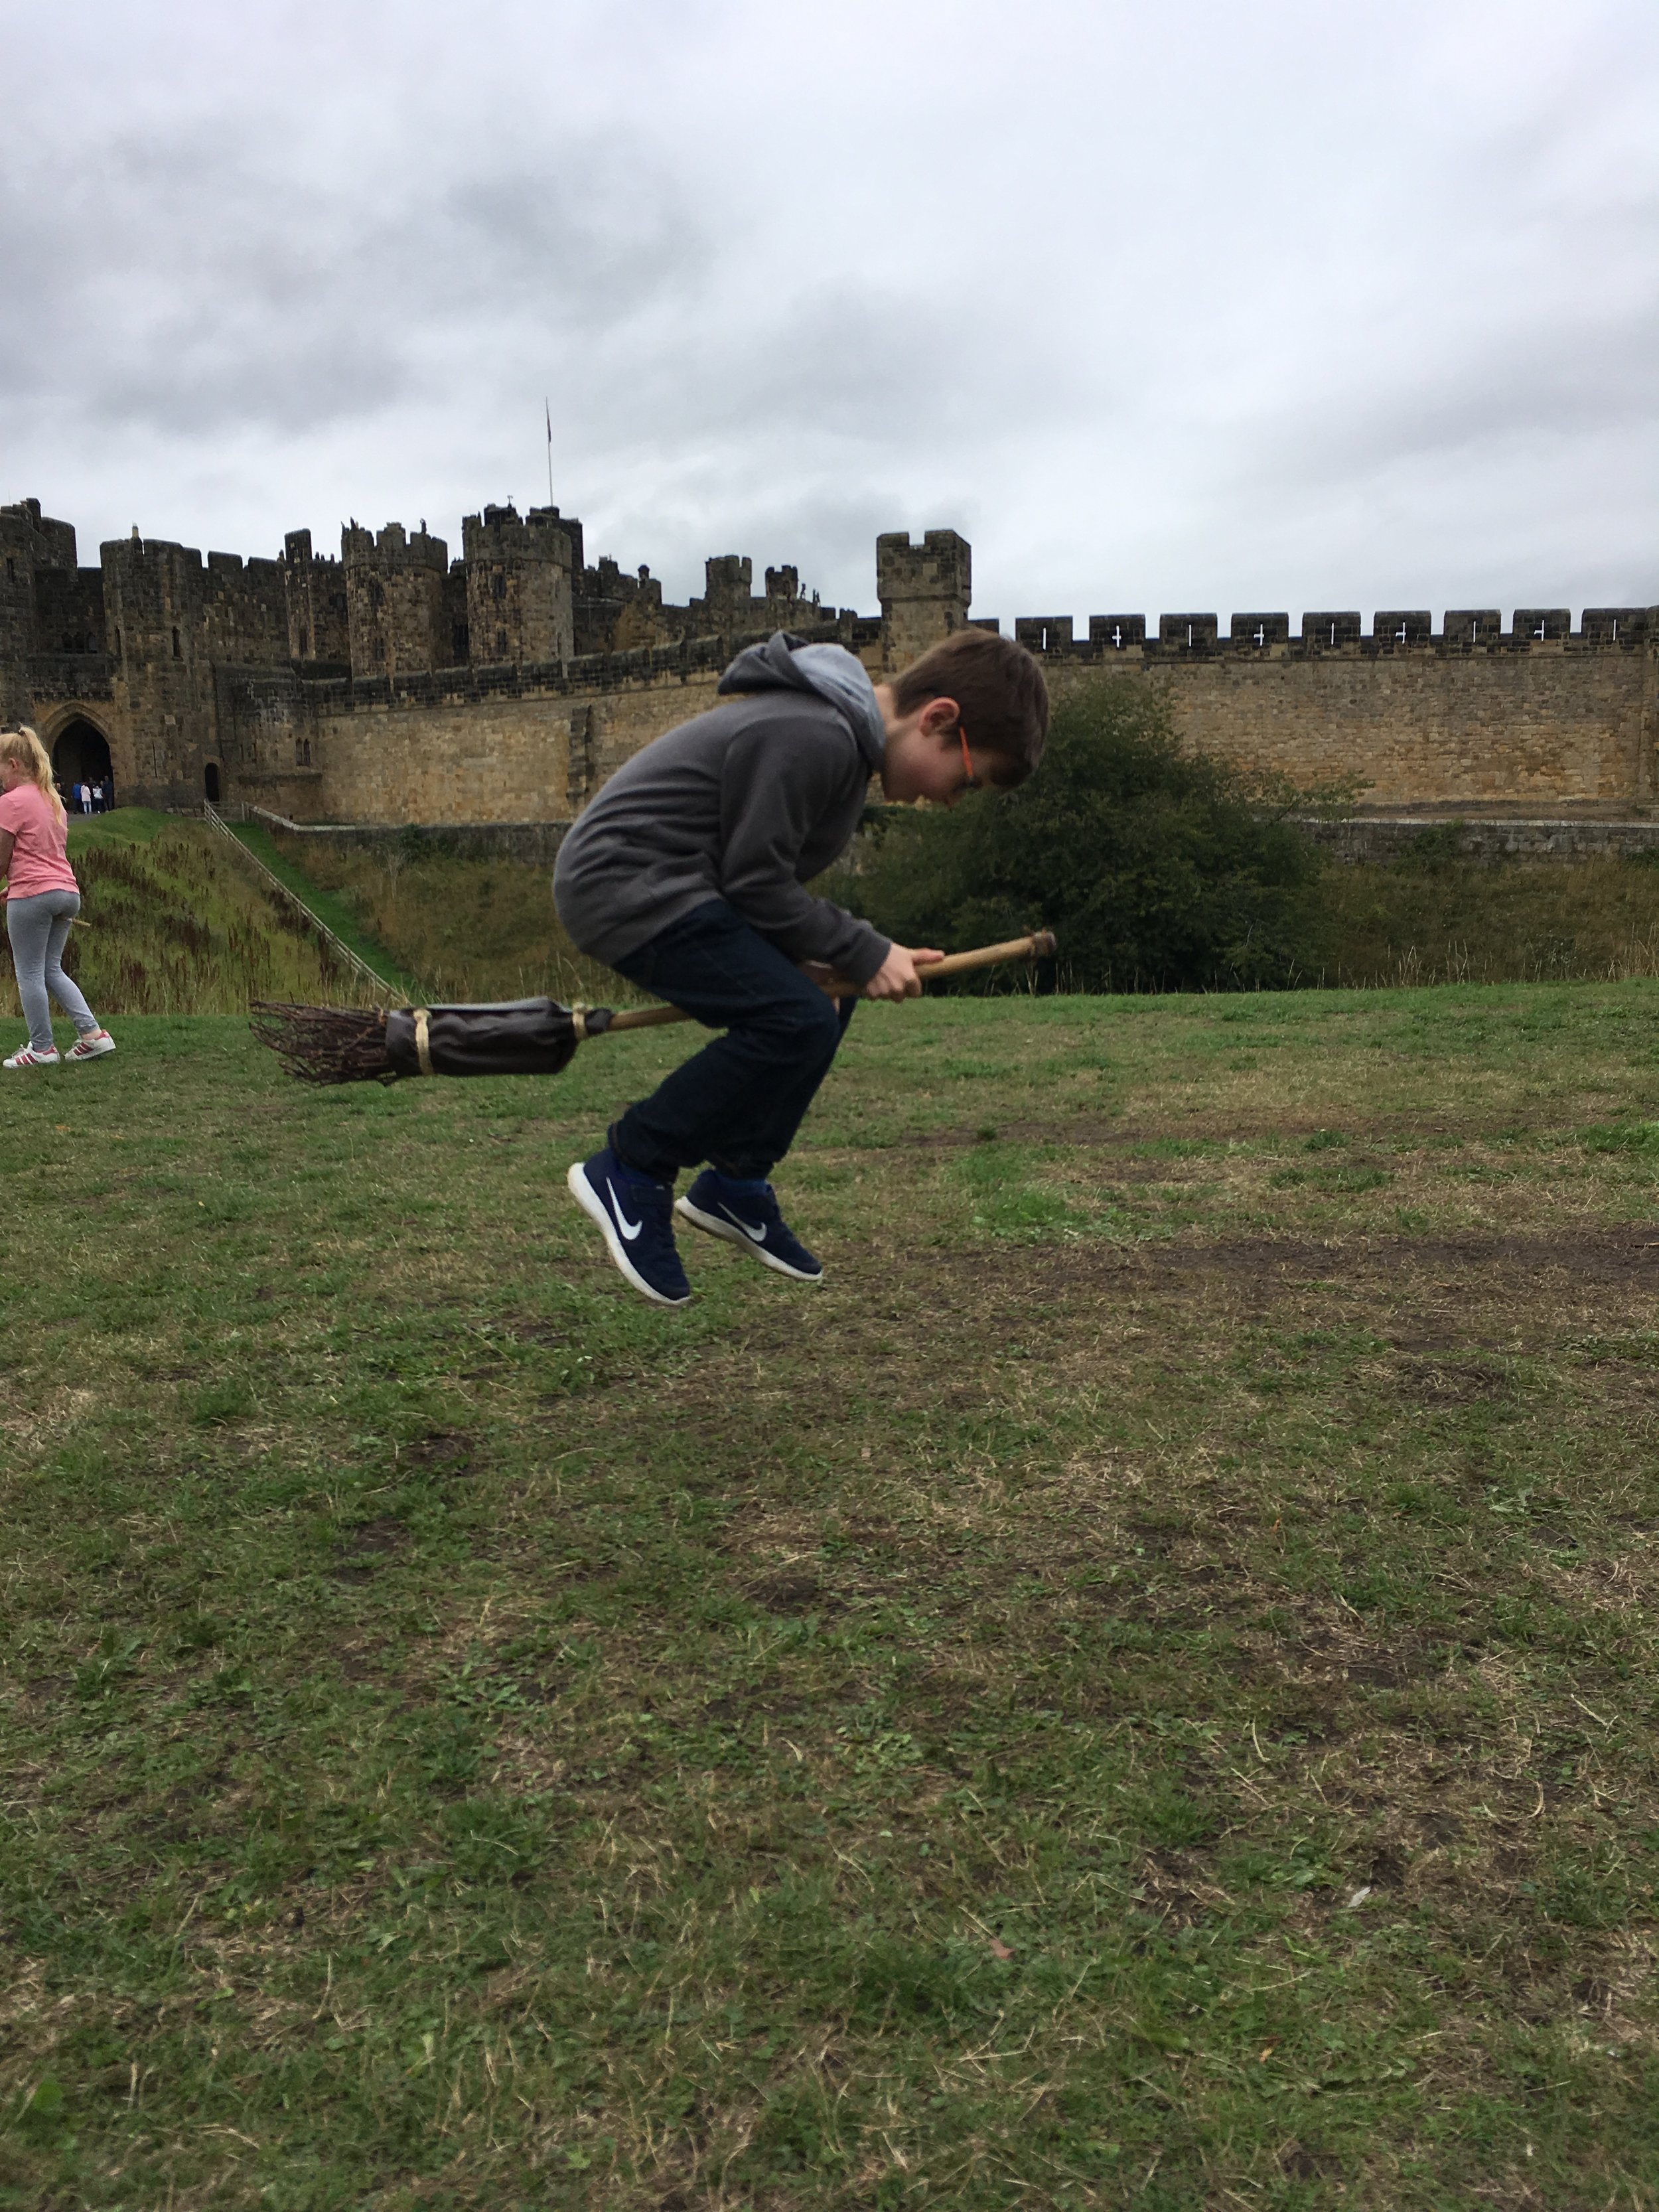 Alnwick Castle is the home to the Harry Potter location for the broomstick lessons and we so happened to get a chance to fly a broom too!